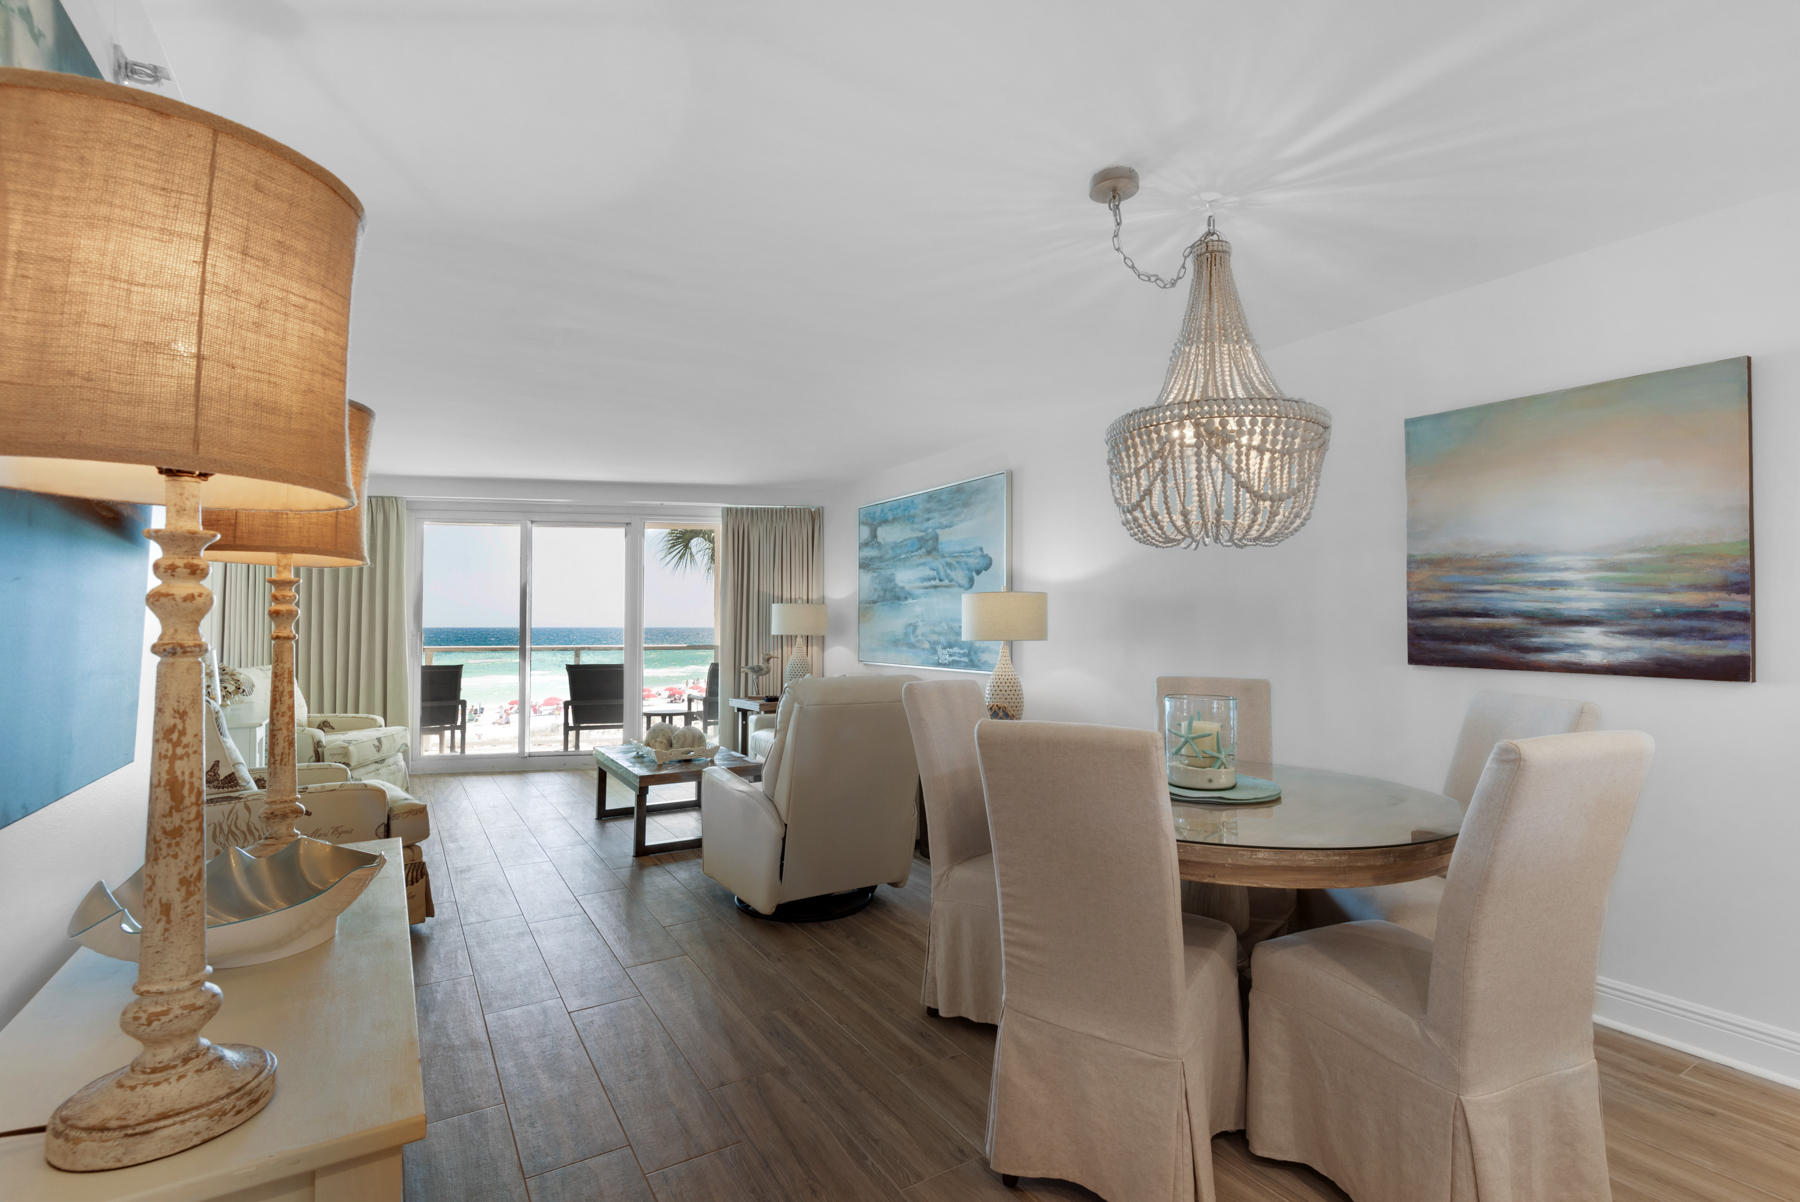 Move-in or rental-ready renovated beachfront condominium with on-trend coastal interiors, covered pa